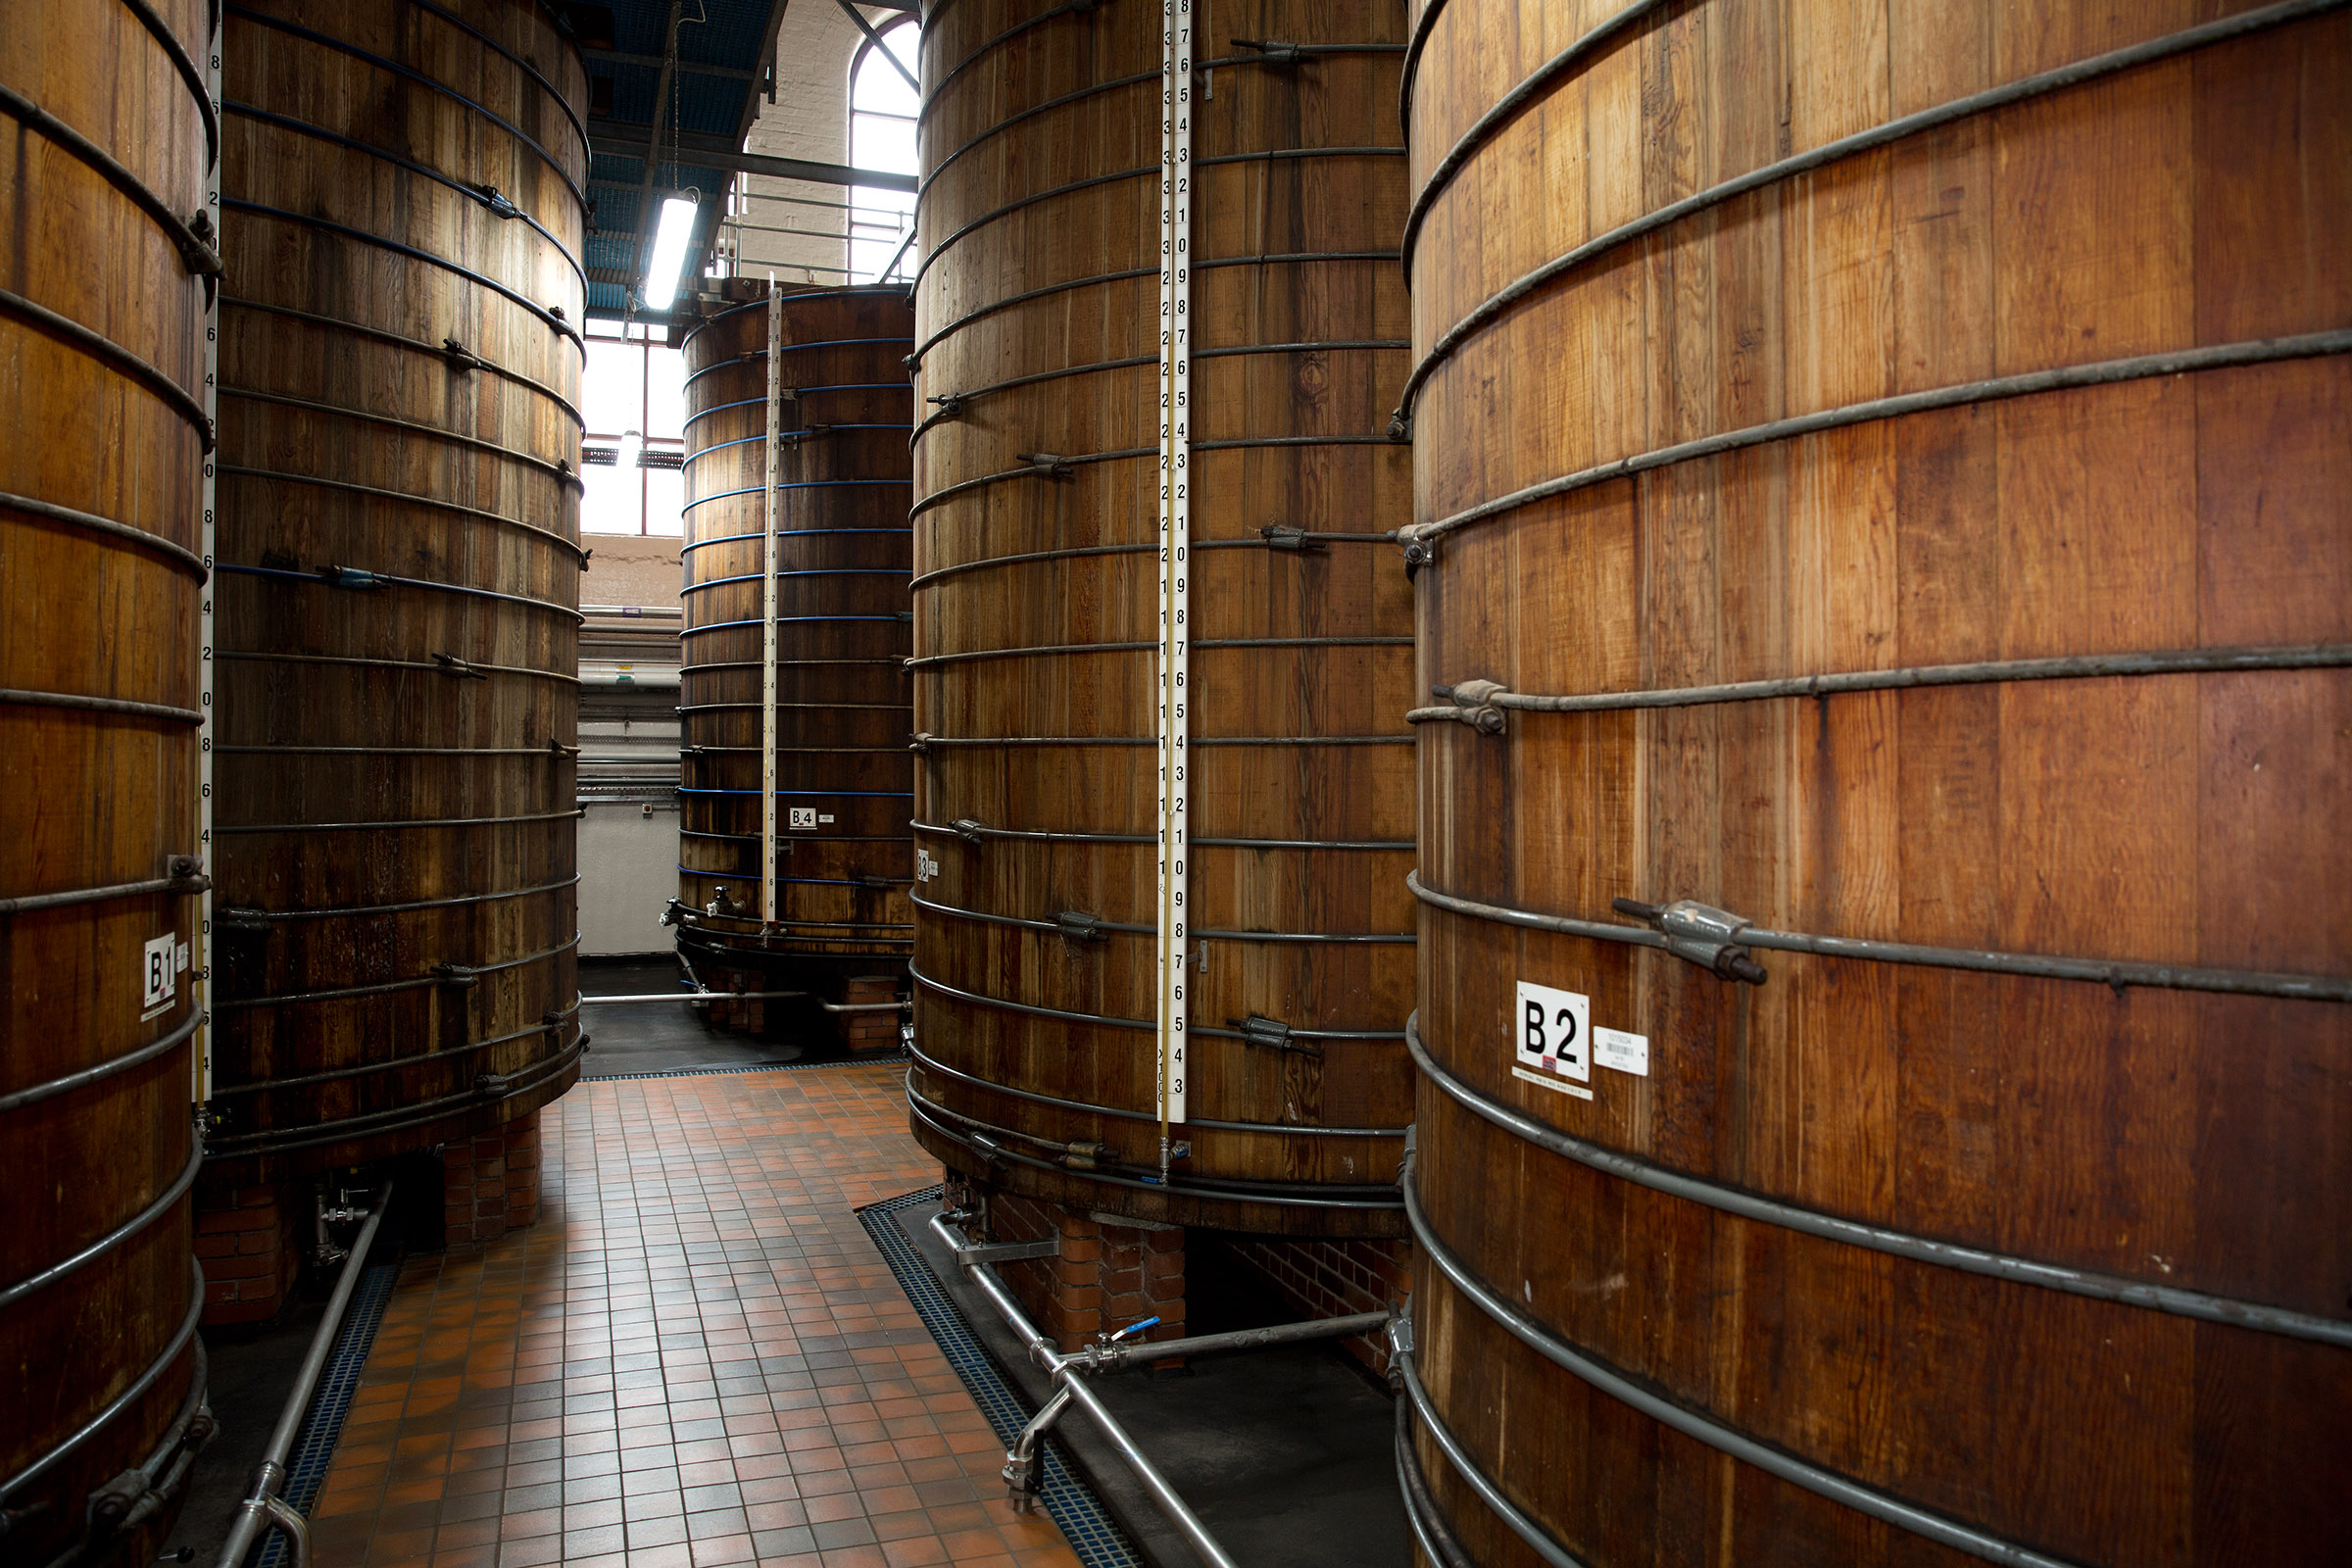 These century old barrels are at the heart of the Sarson's factory